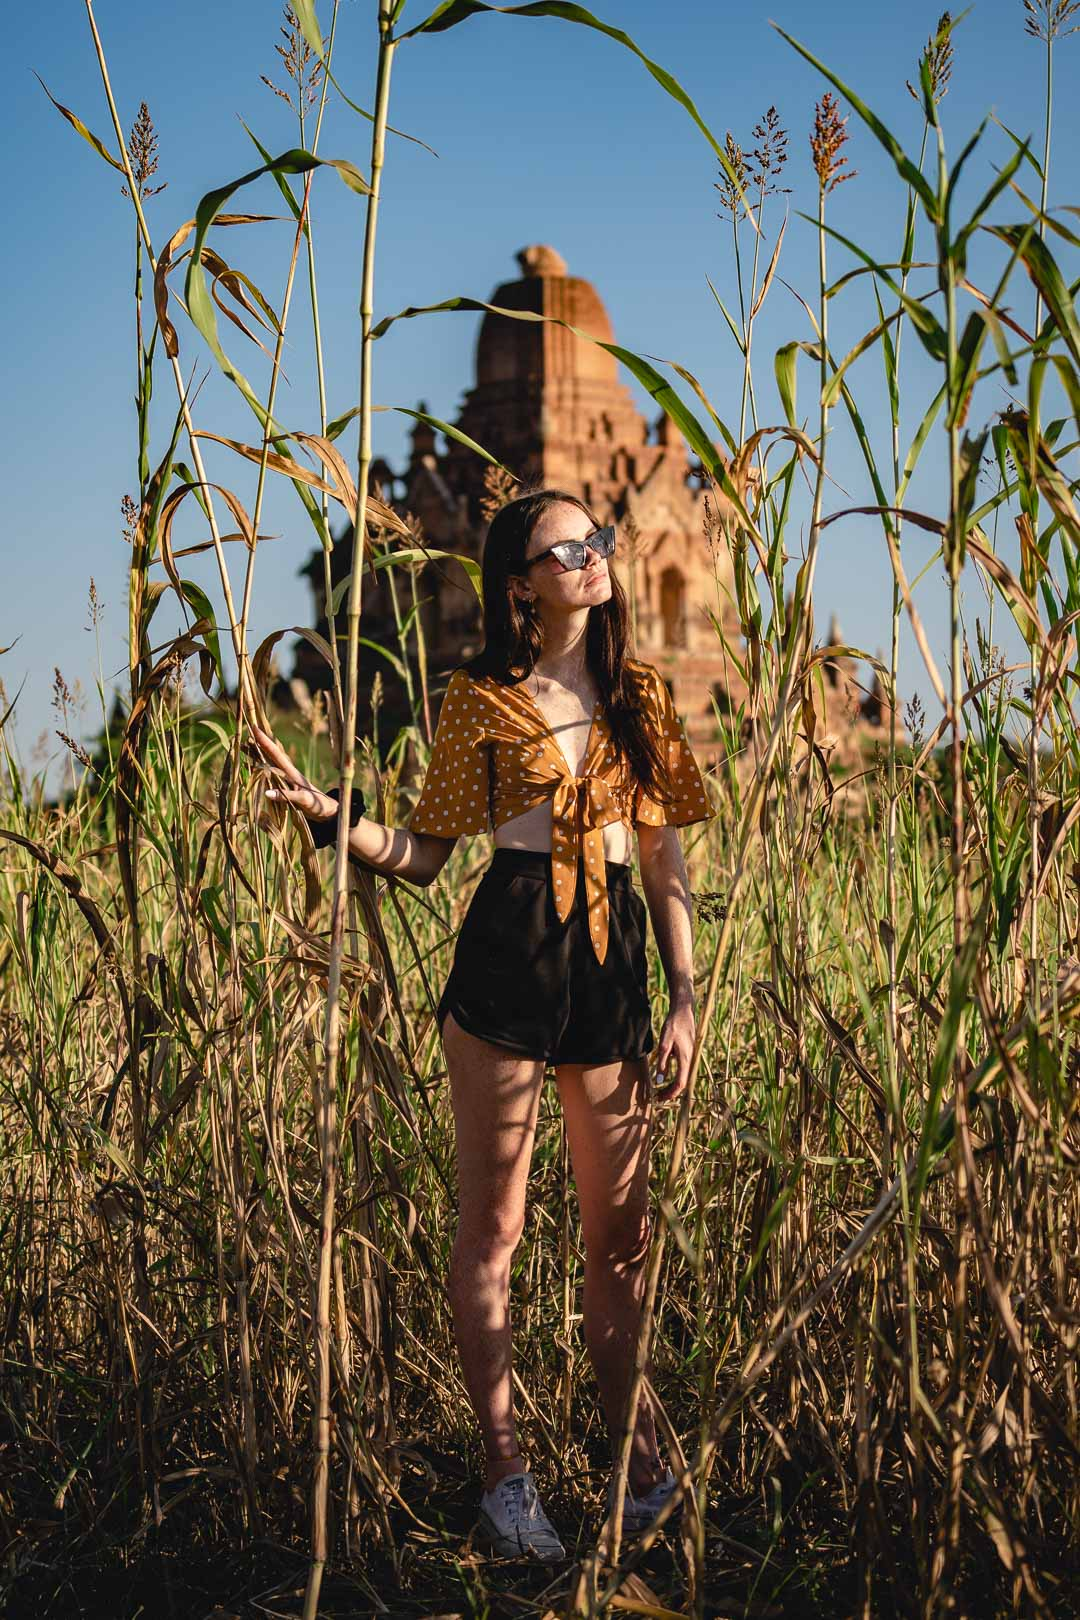 Woman model in a rice field in front of a Bagan temple